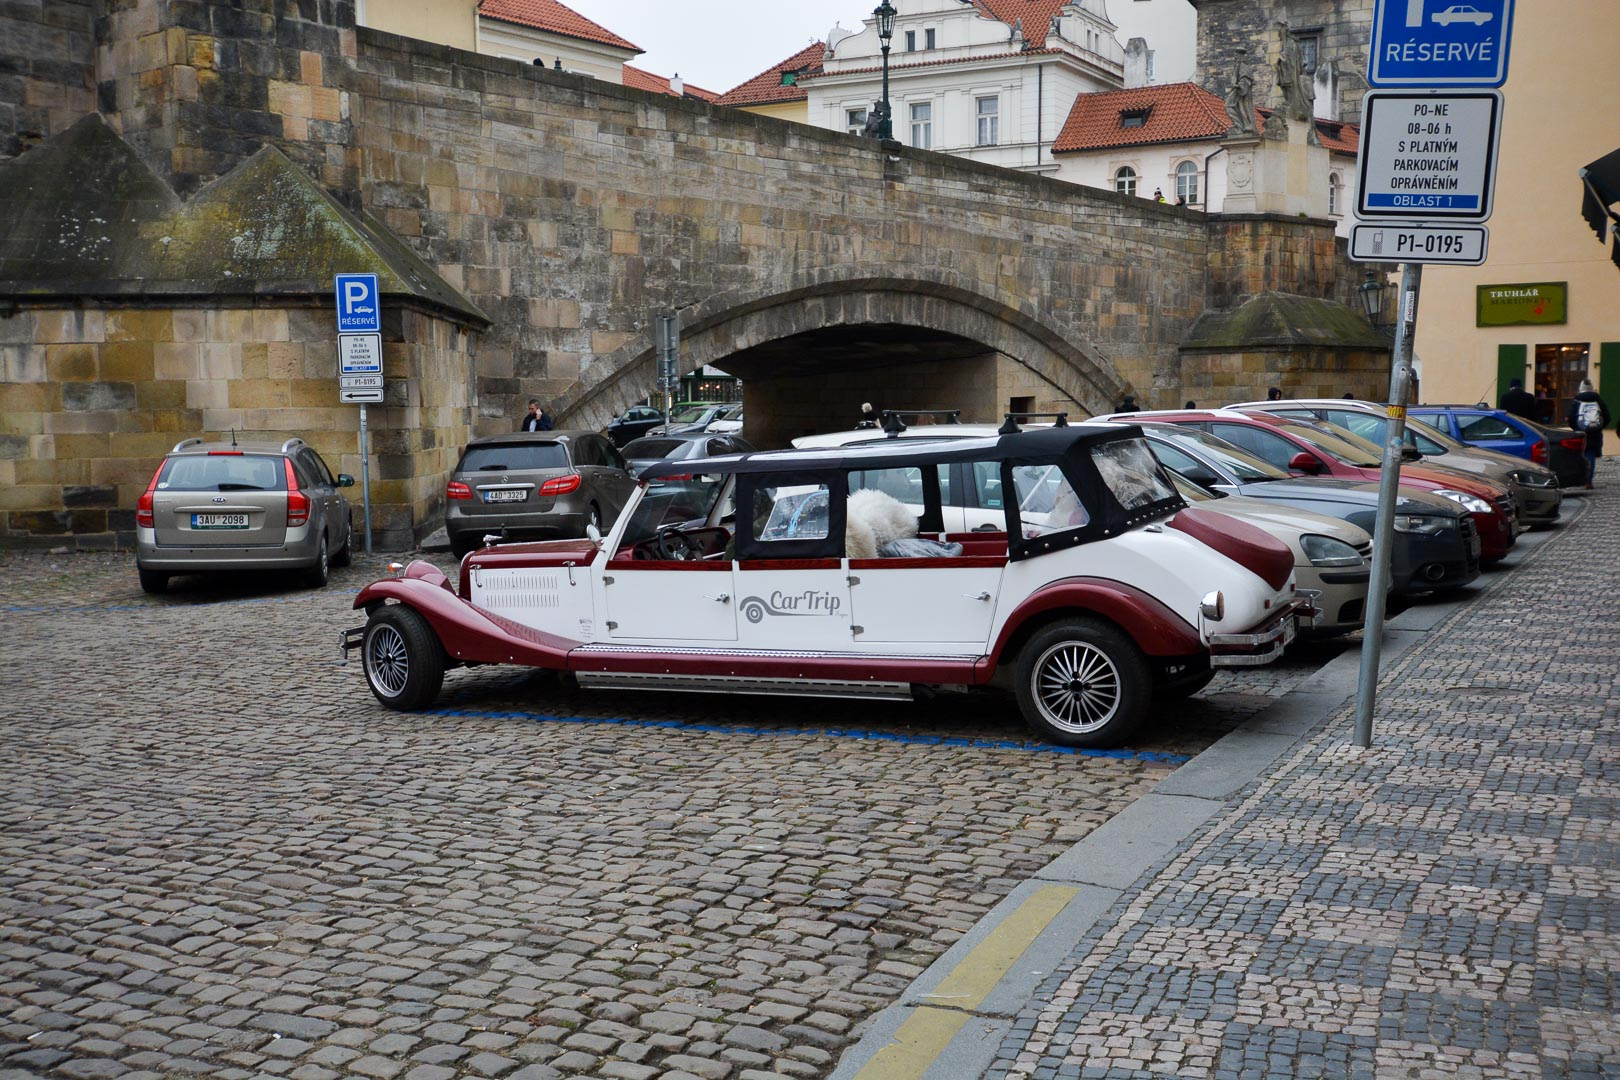 We saw a few of these old extended cars driving around Old Town—looks like a great way to see the city